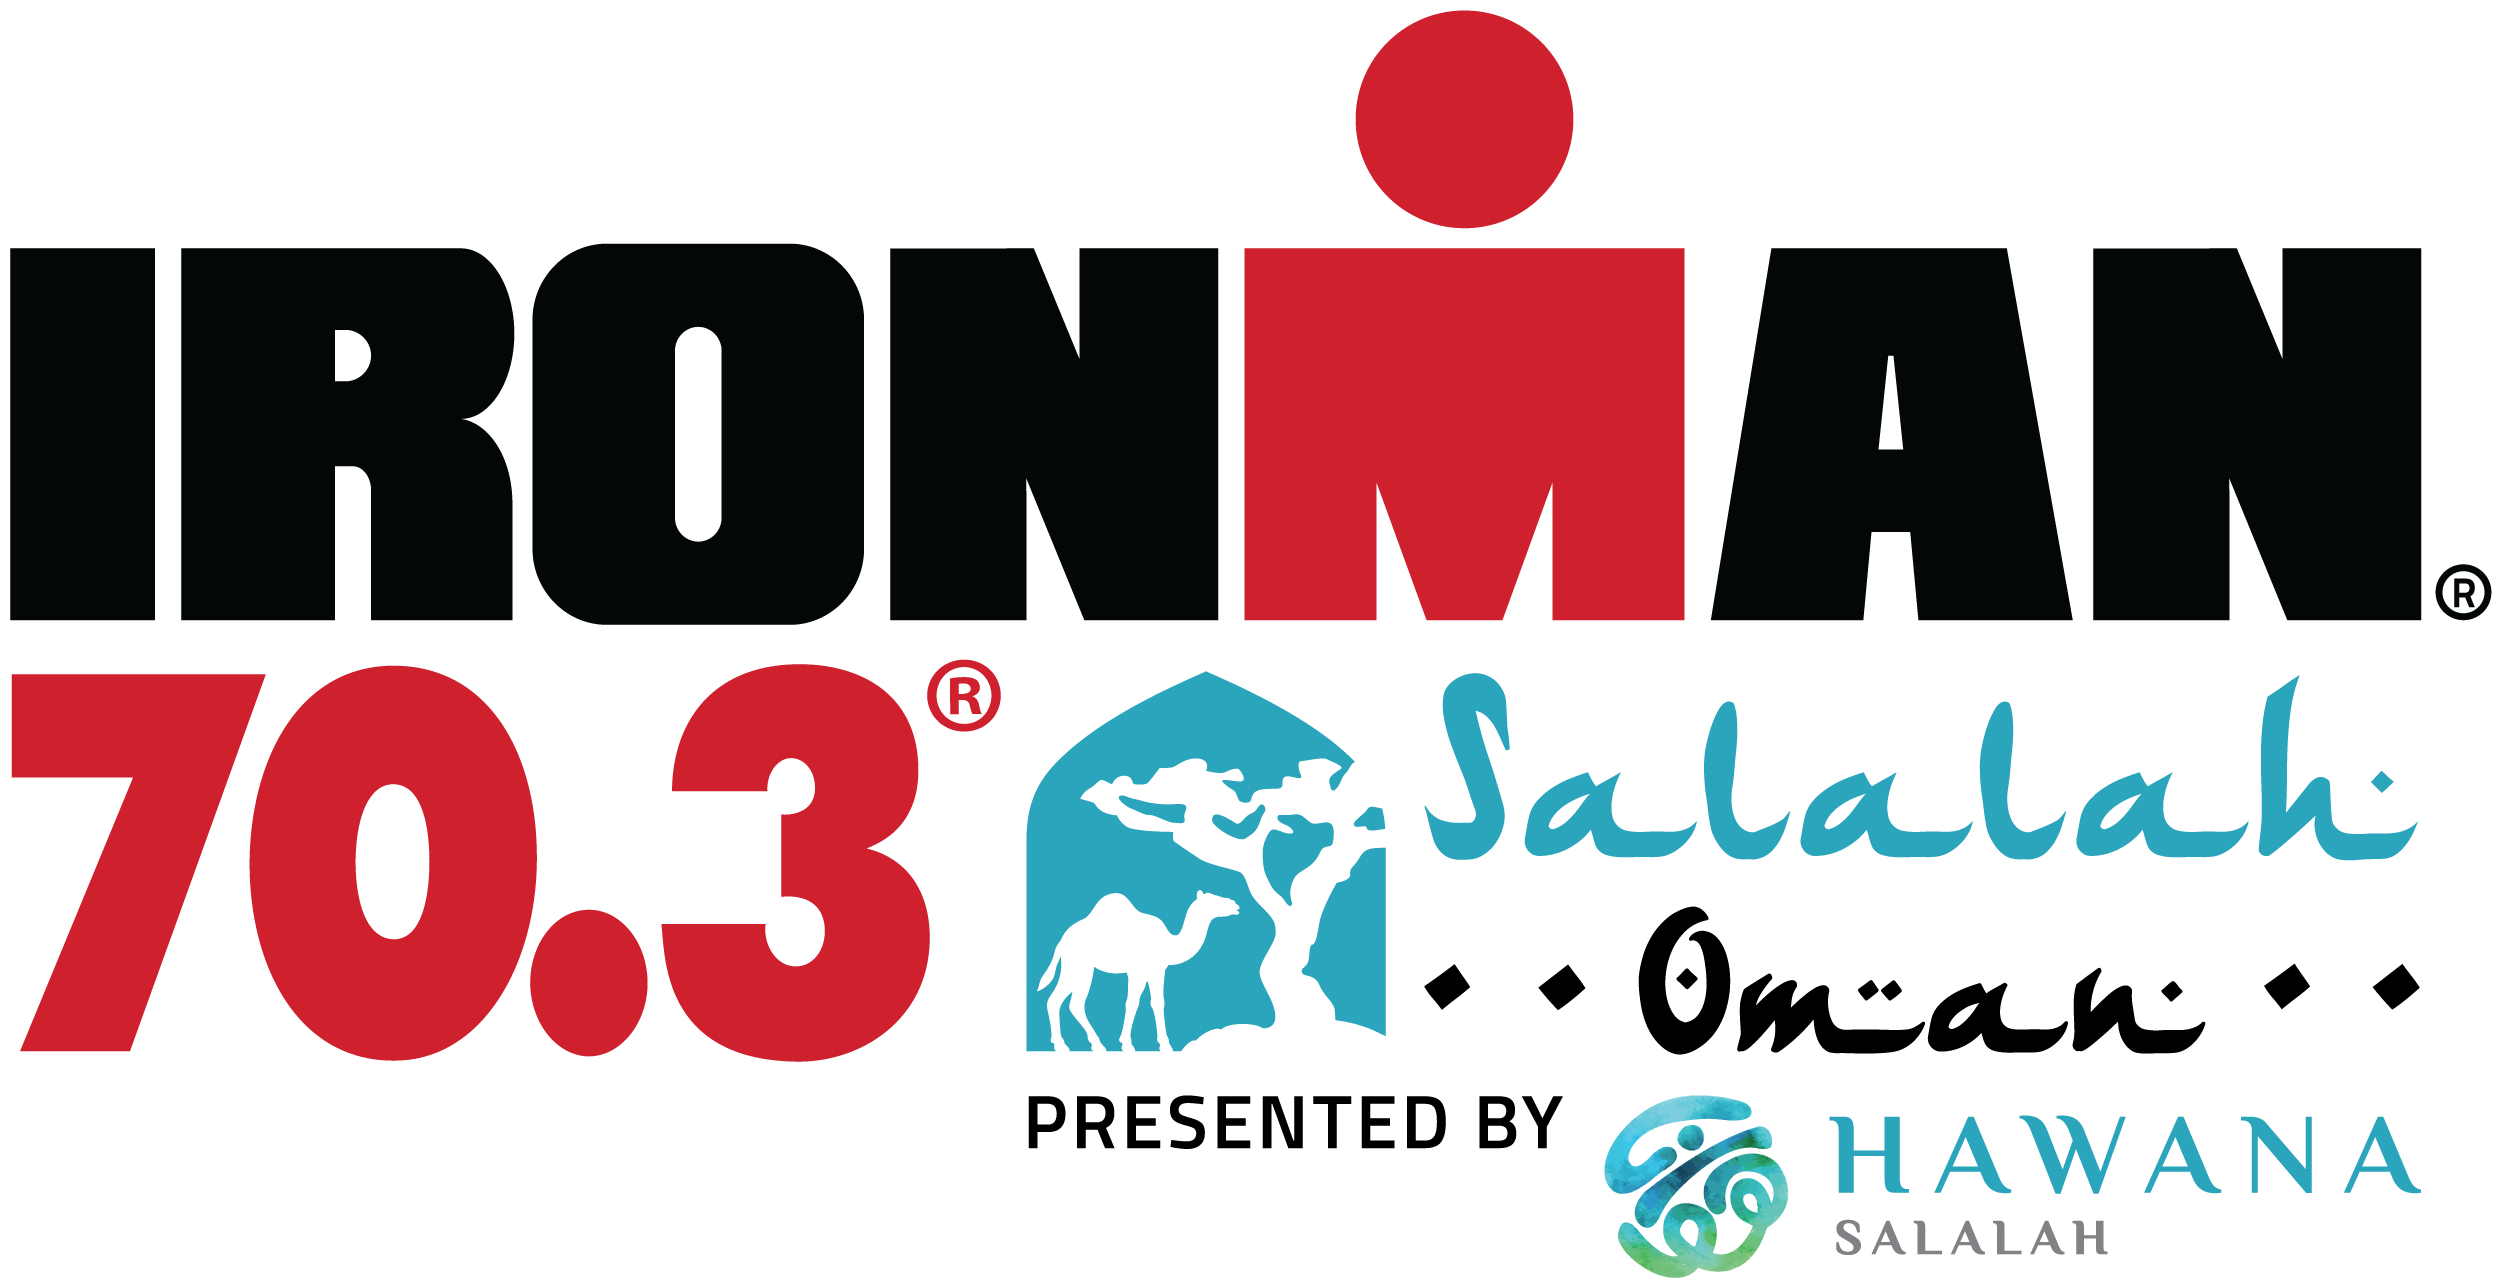 Official IRONMAN 70.3 Salalah presented by Hawana Salalah race logo